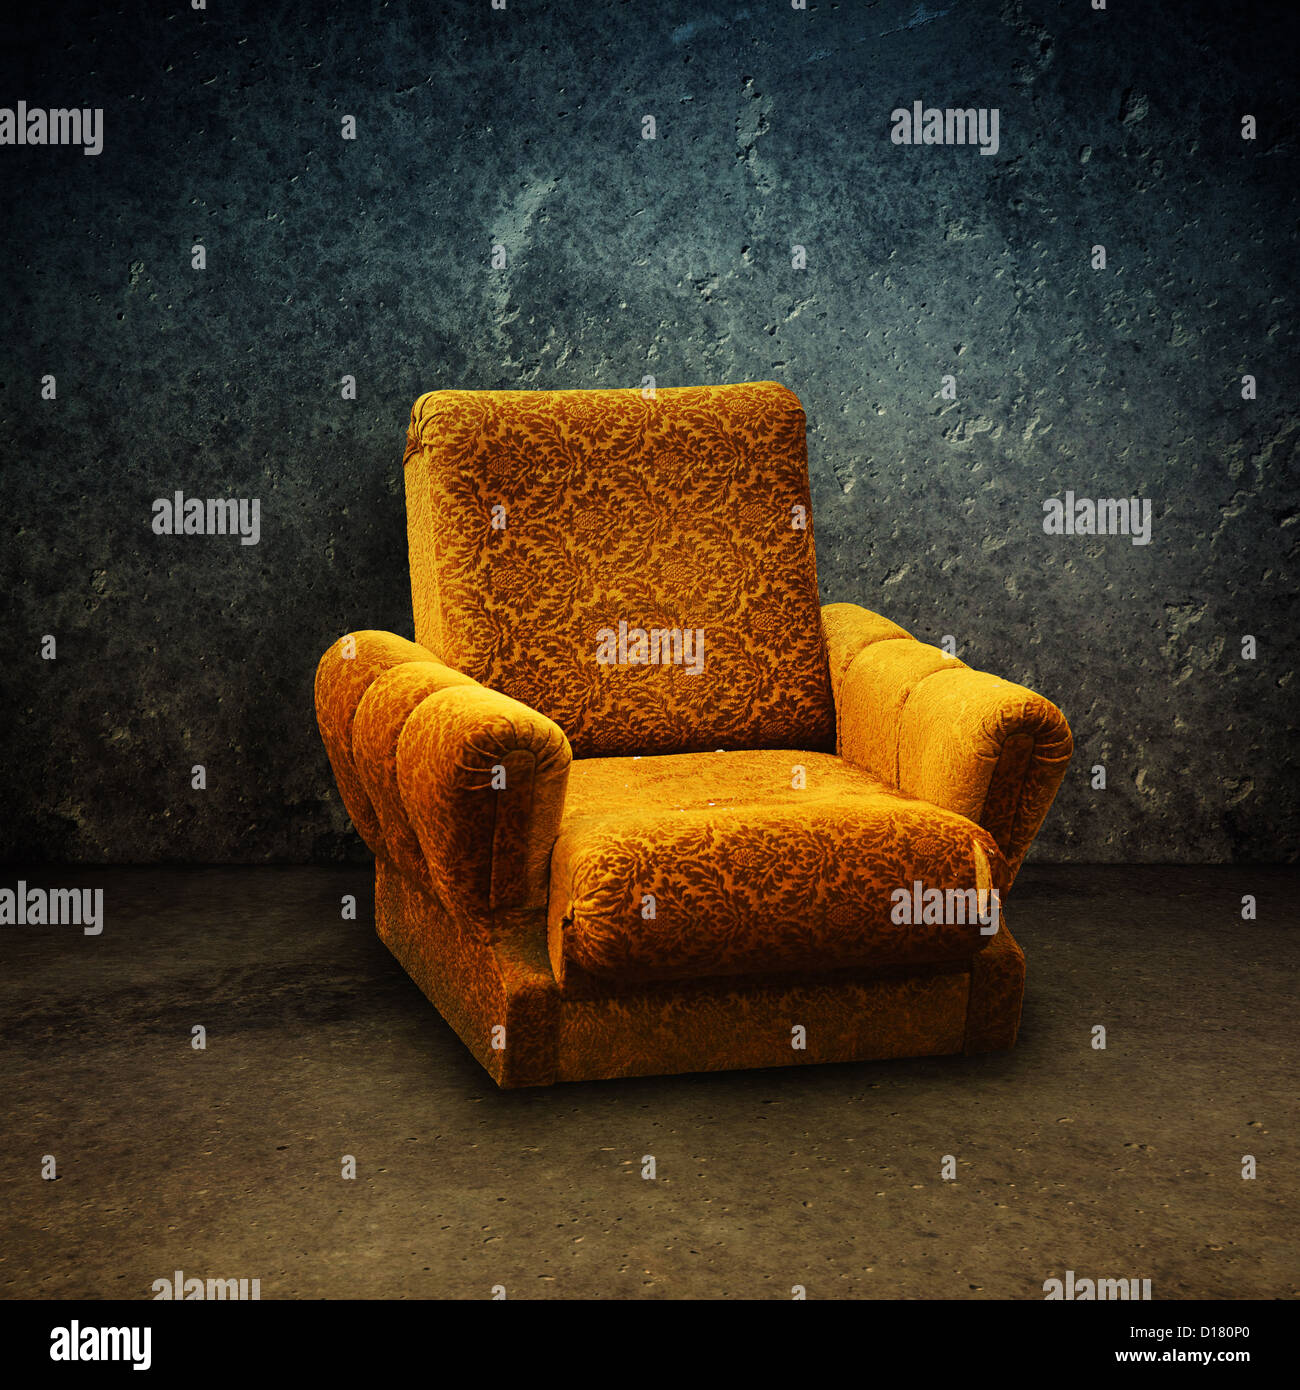 Old yellow armchair in a grungy, dirty interior - Stock Image